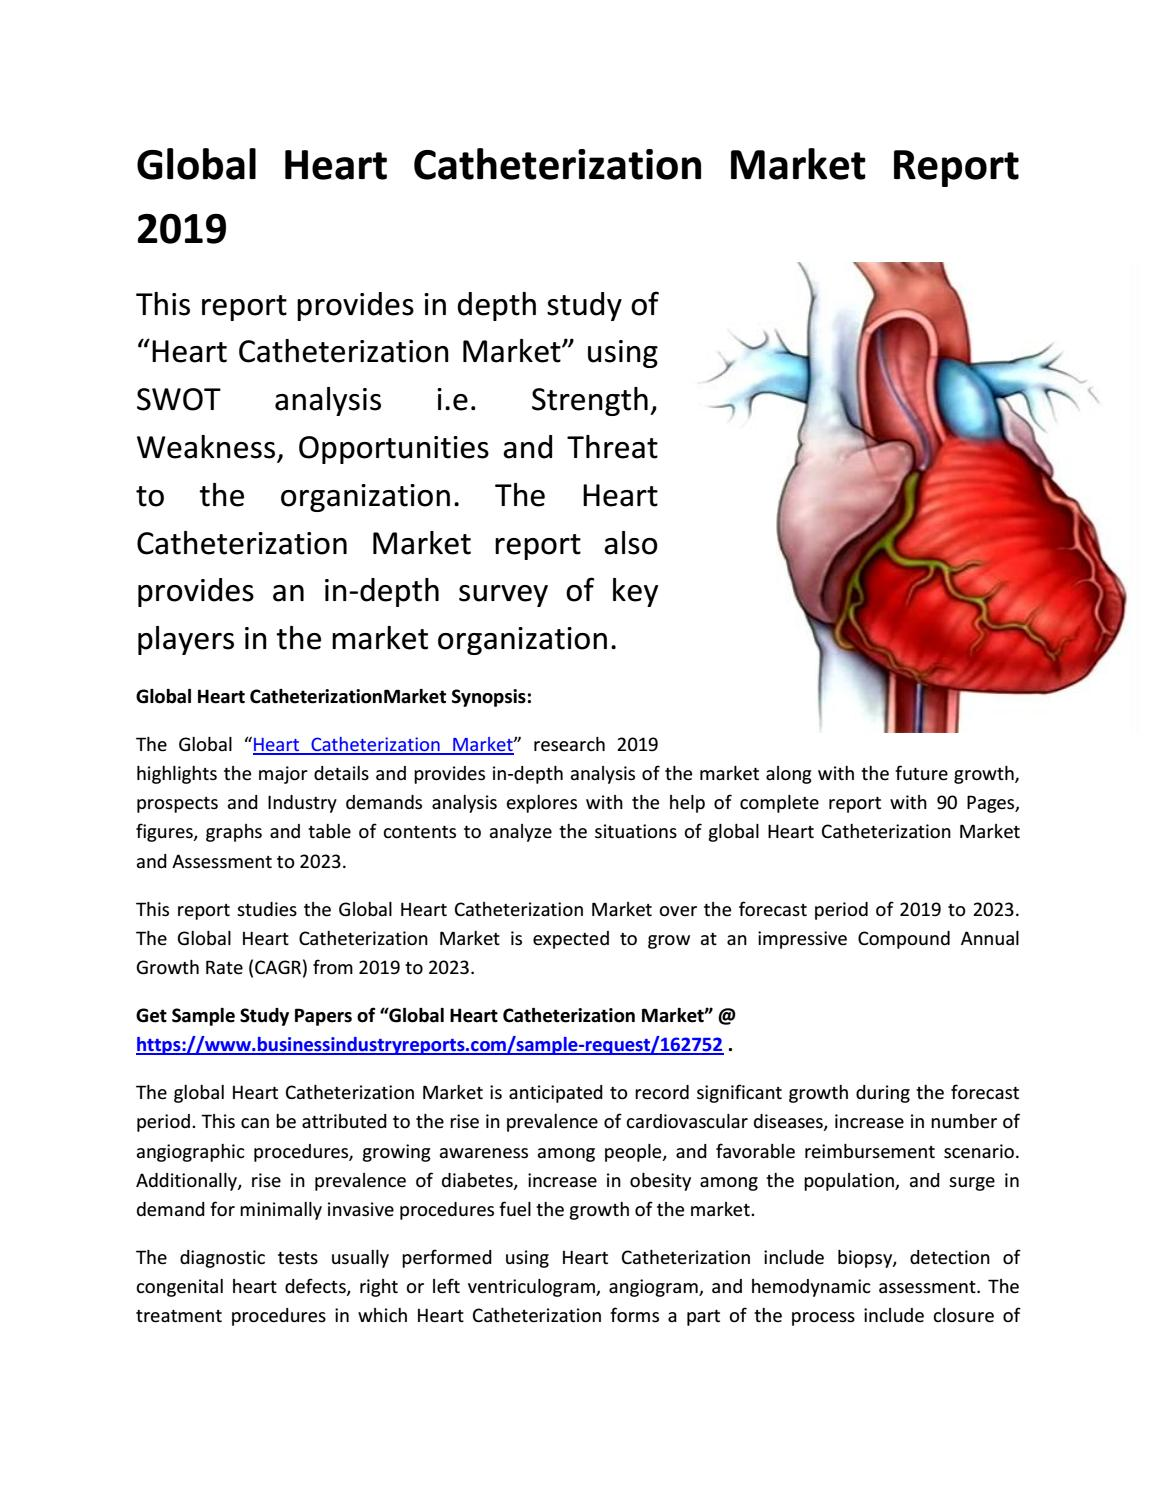 Global Heart Catheterization Market Future Forecast 2019